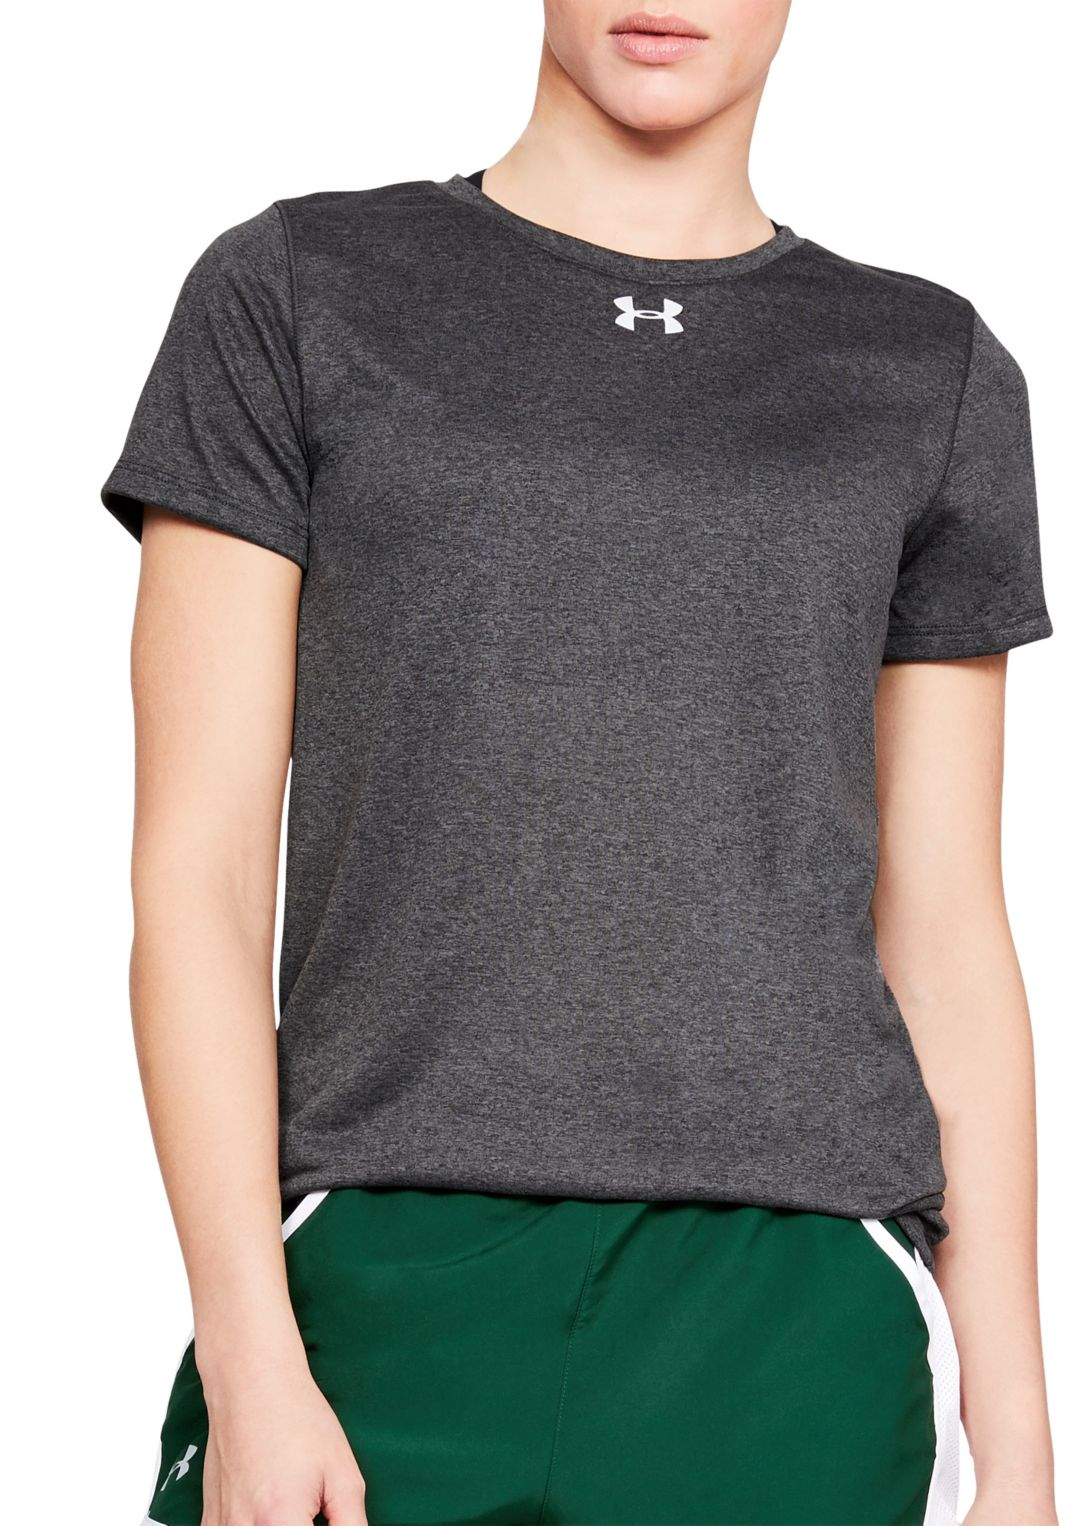 7115e1d0e Under Armour Women's Locker 2.0 T-Shirt | DICK'S Sporting Goods